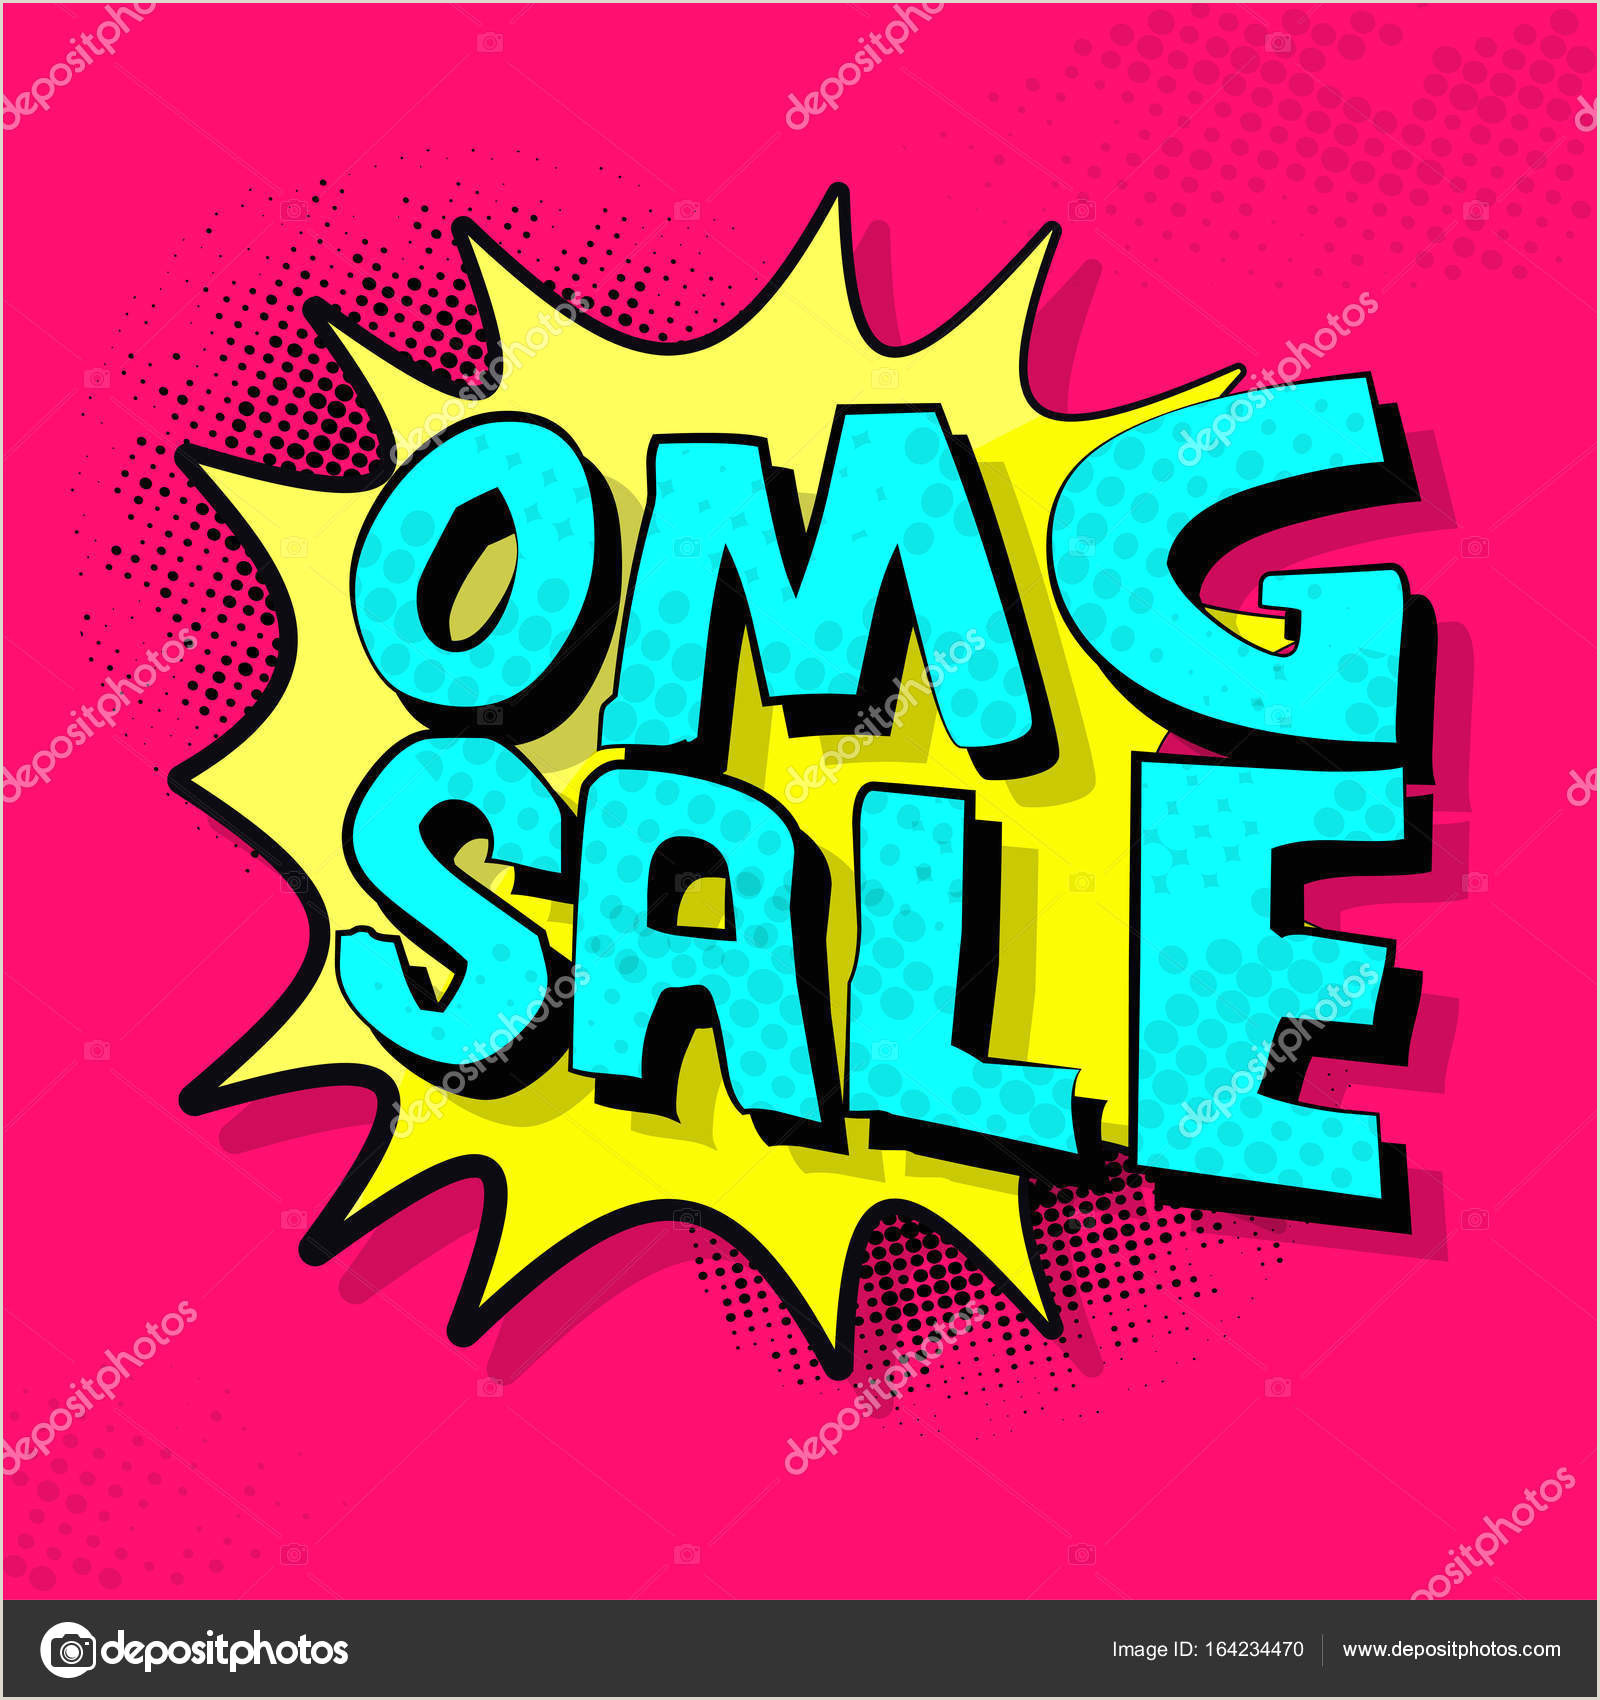 Pop Up Marketing Banners Omg Sale Banner Or Sale Poster Design In Popart Style